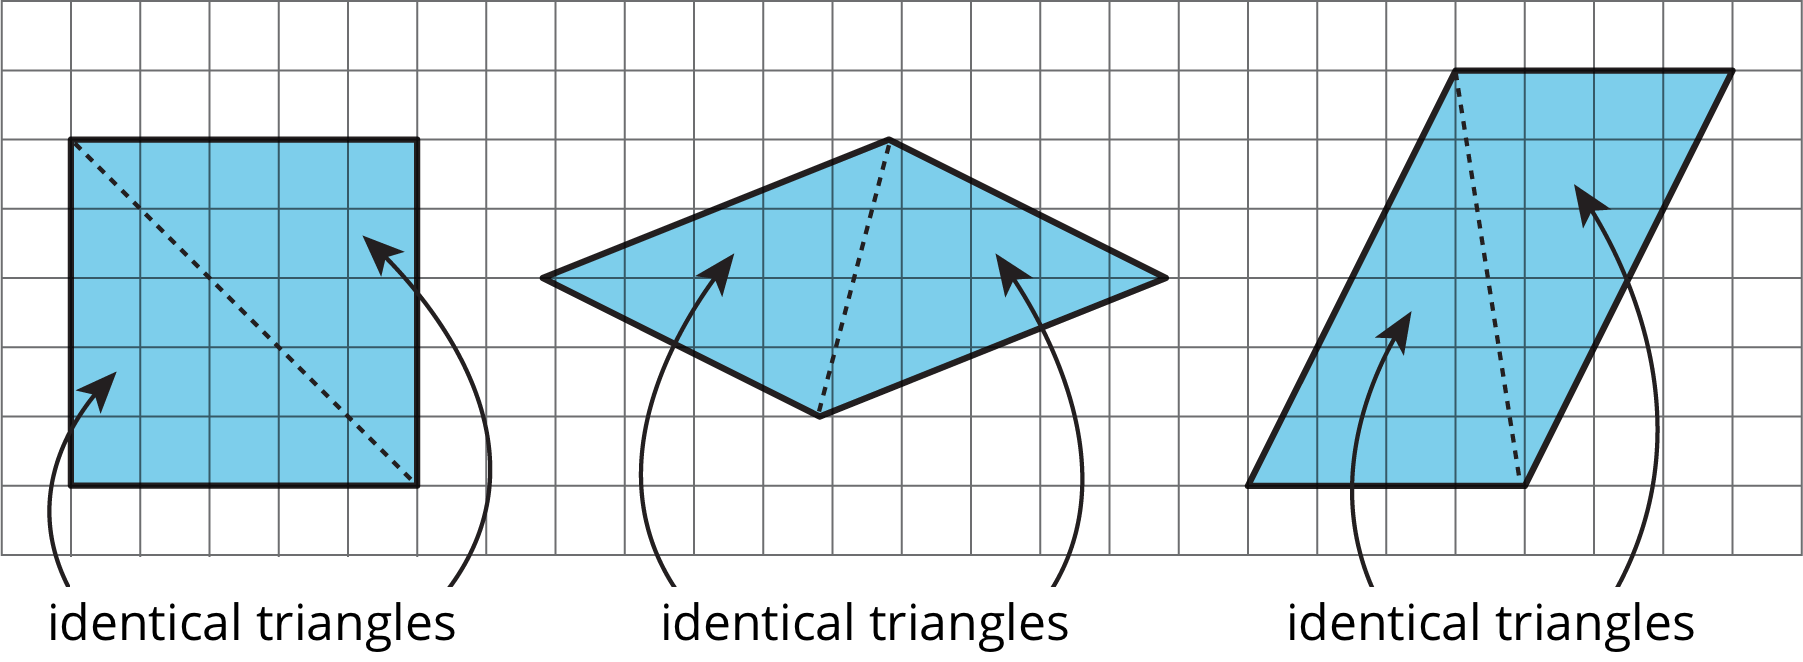 Three parallelograms showing decompositions into two identical triangles.